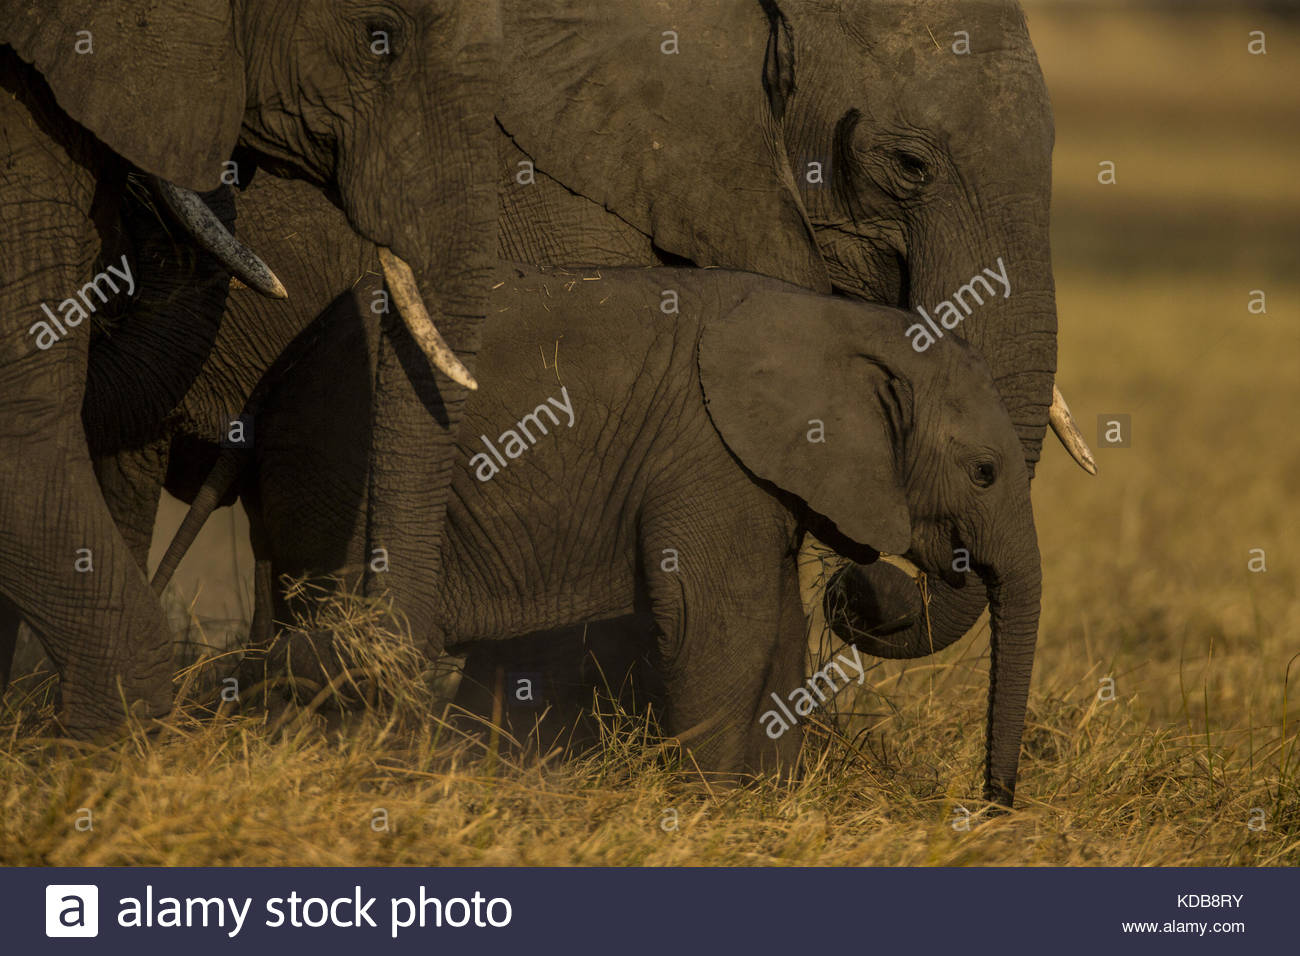 An elephant calf, Loxodonta africana, standing with the herd as they graze. - Stock Image